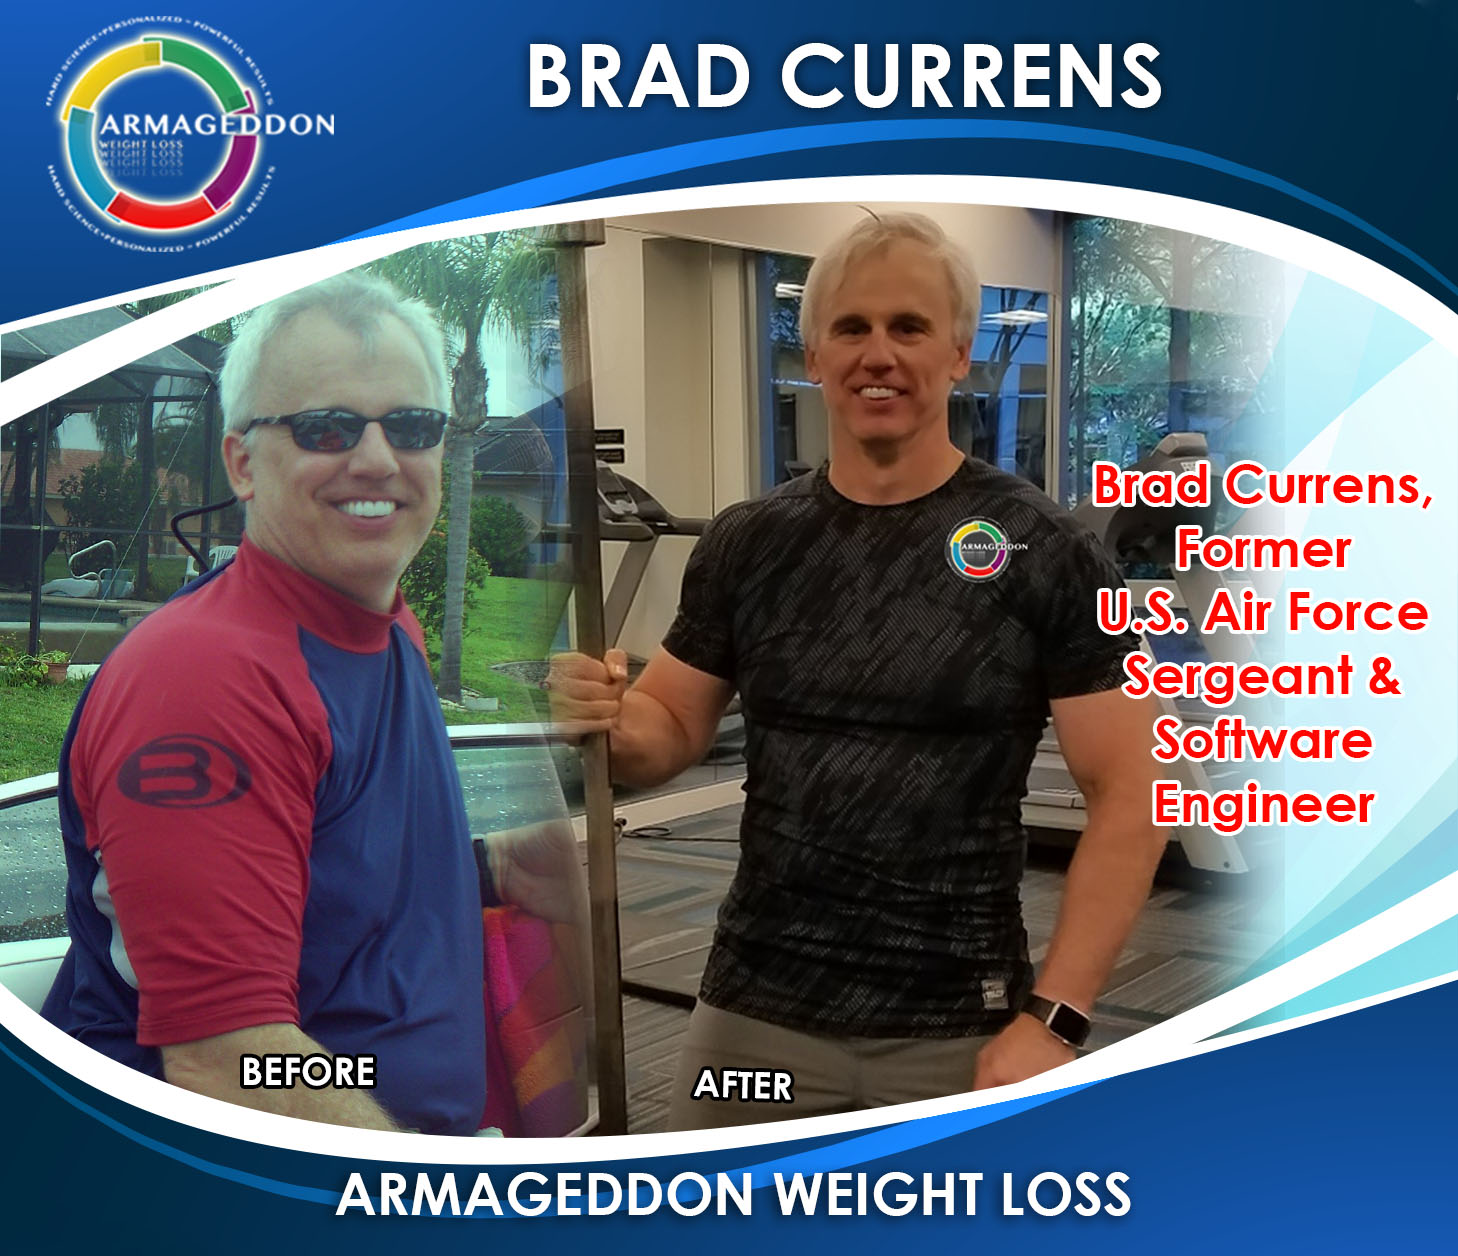 Brad Currens - Armageddon Weight Loss - Best Weight Loss Program for men over 50, Best exercise DVD for men over 50, Bruce Wayne - docscience, best exercise DVD for women, Atlanta, Bruce Wayne,